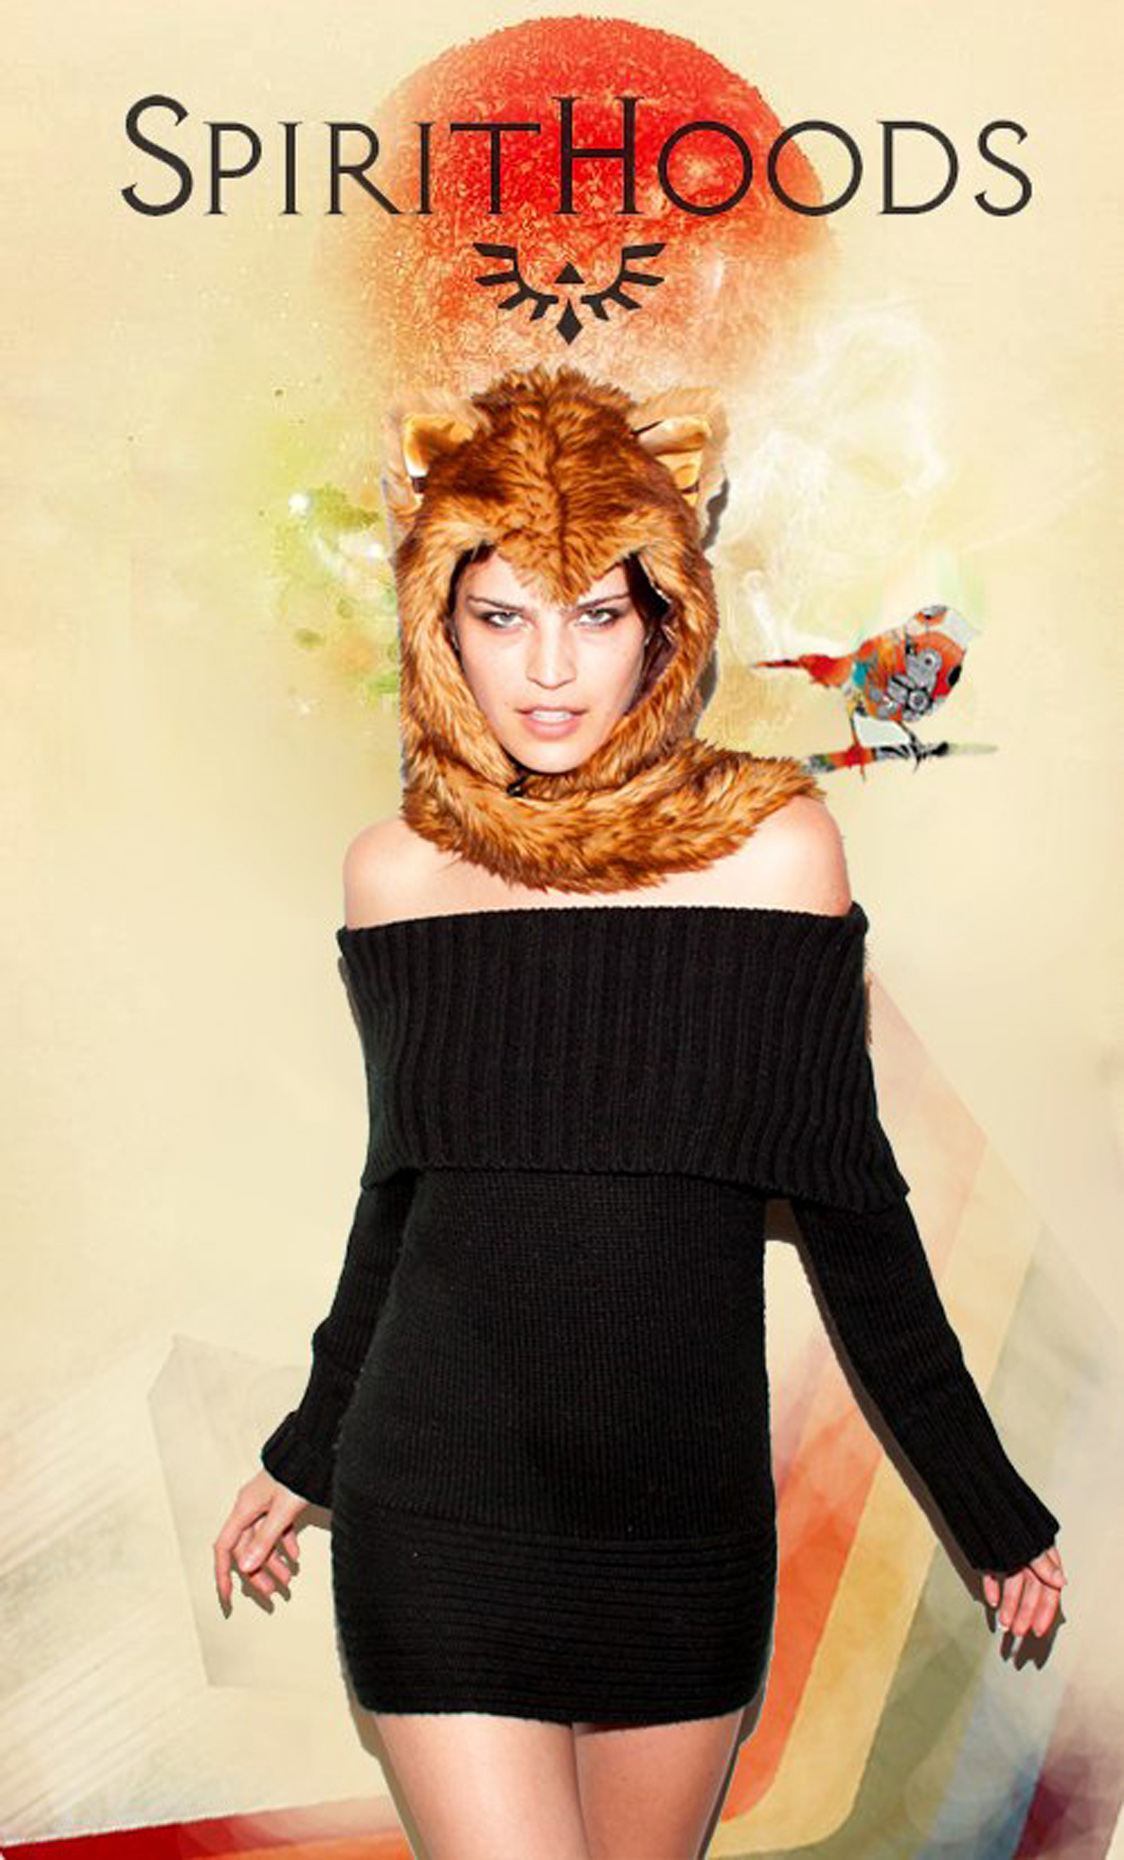 spirithoods_arty_ashley_haber.jpg